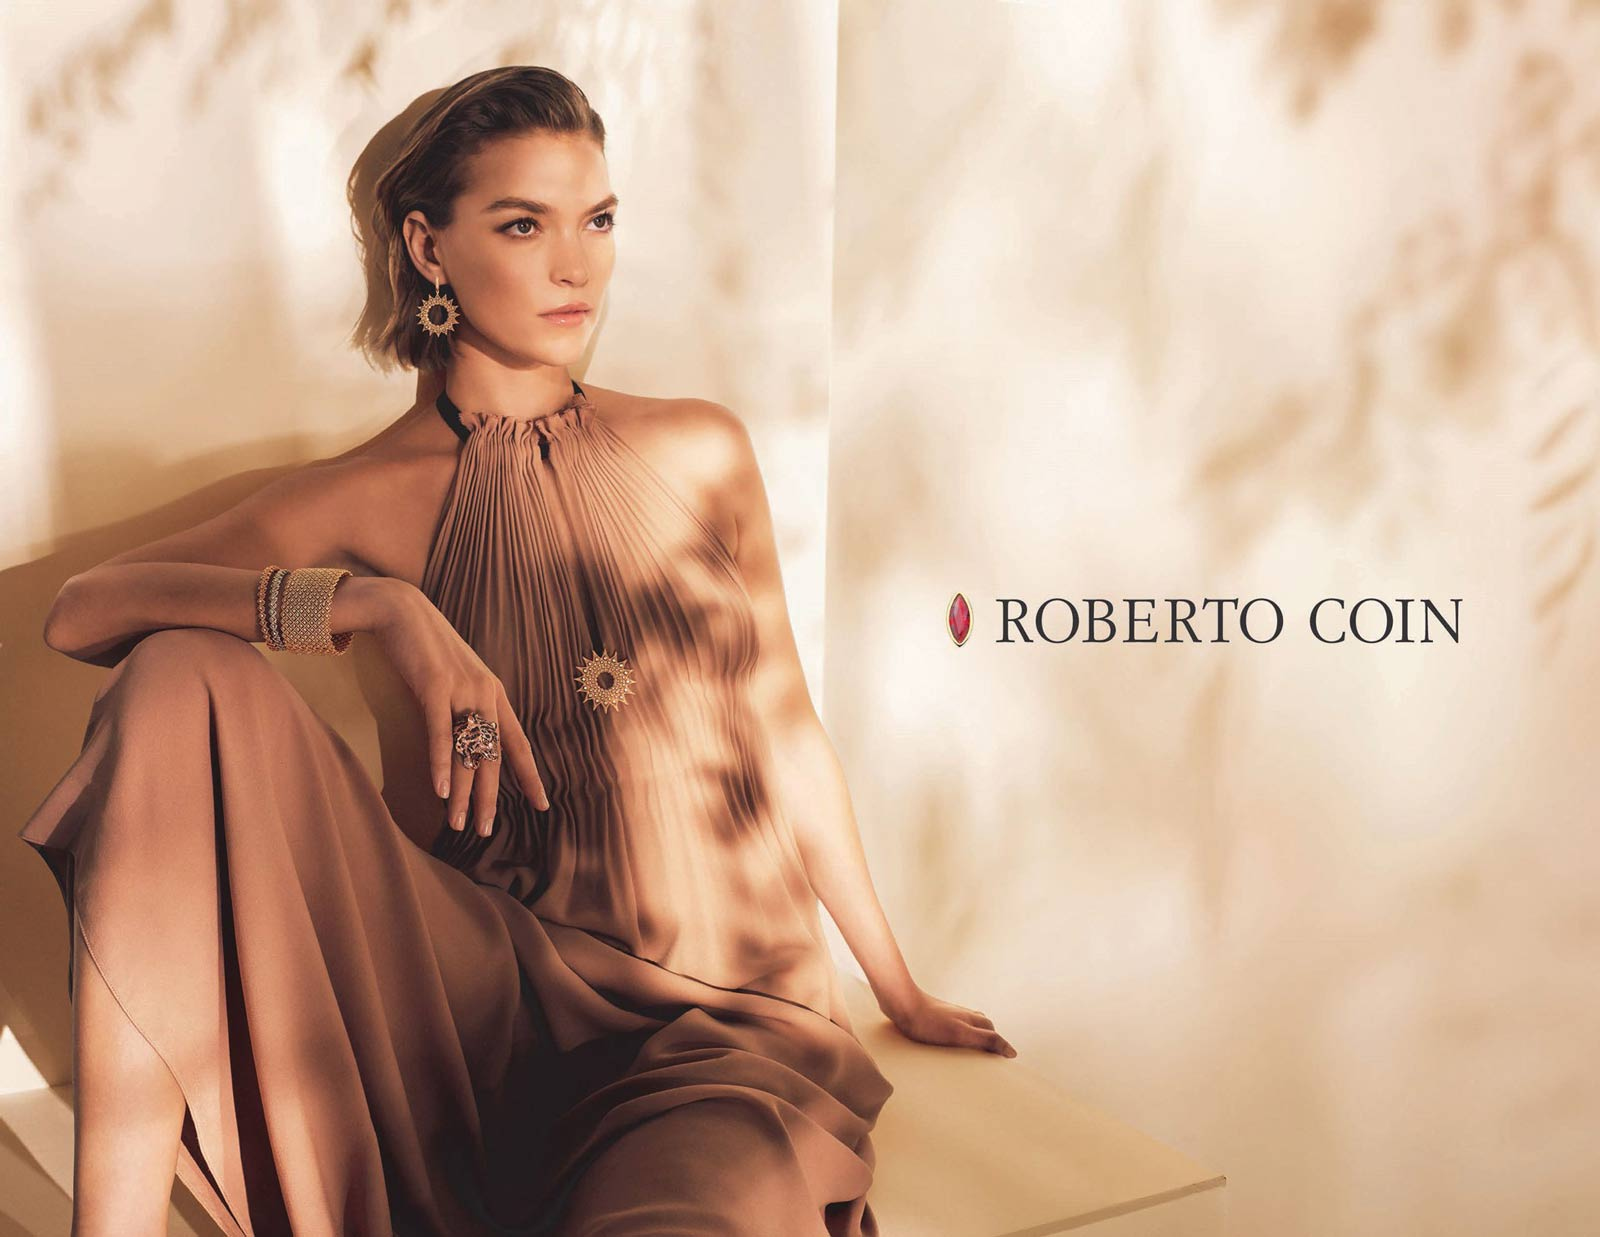 Roberto Coin 2018-2019 Campaigne with Arizona Muse